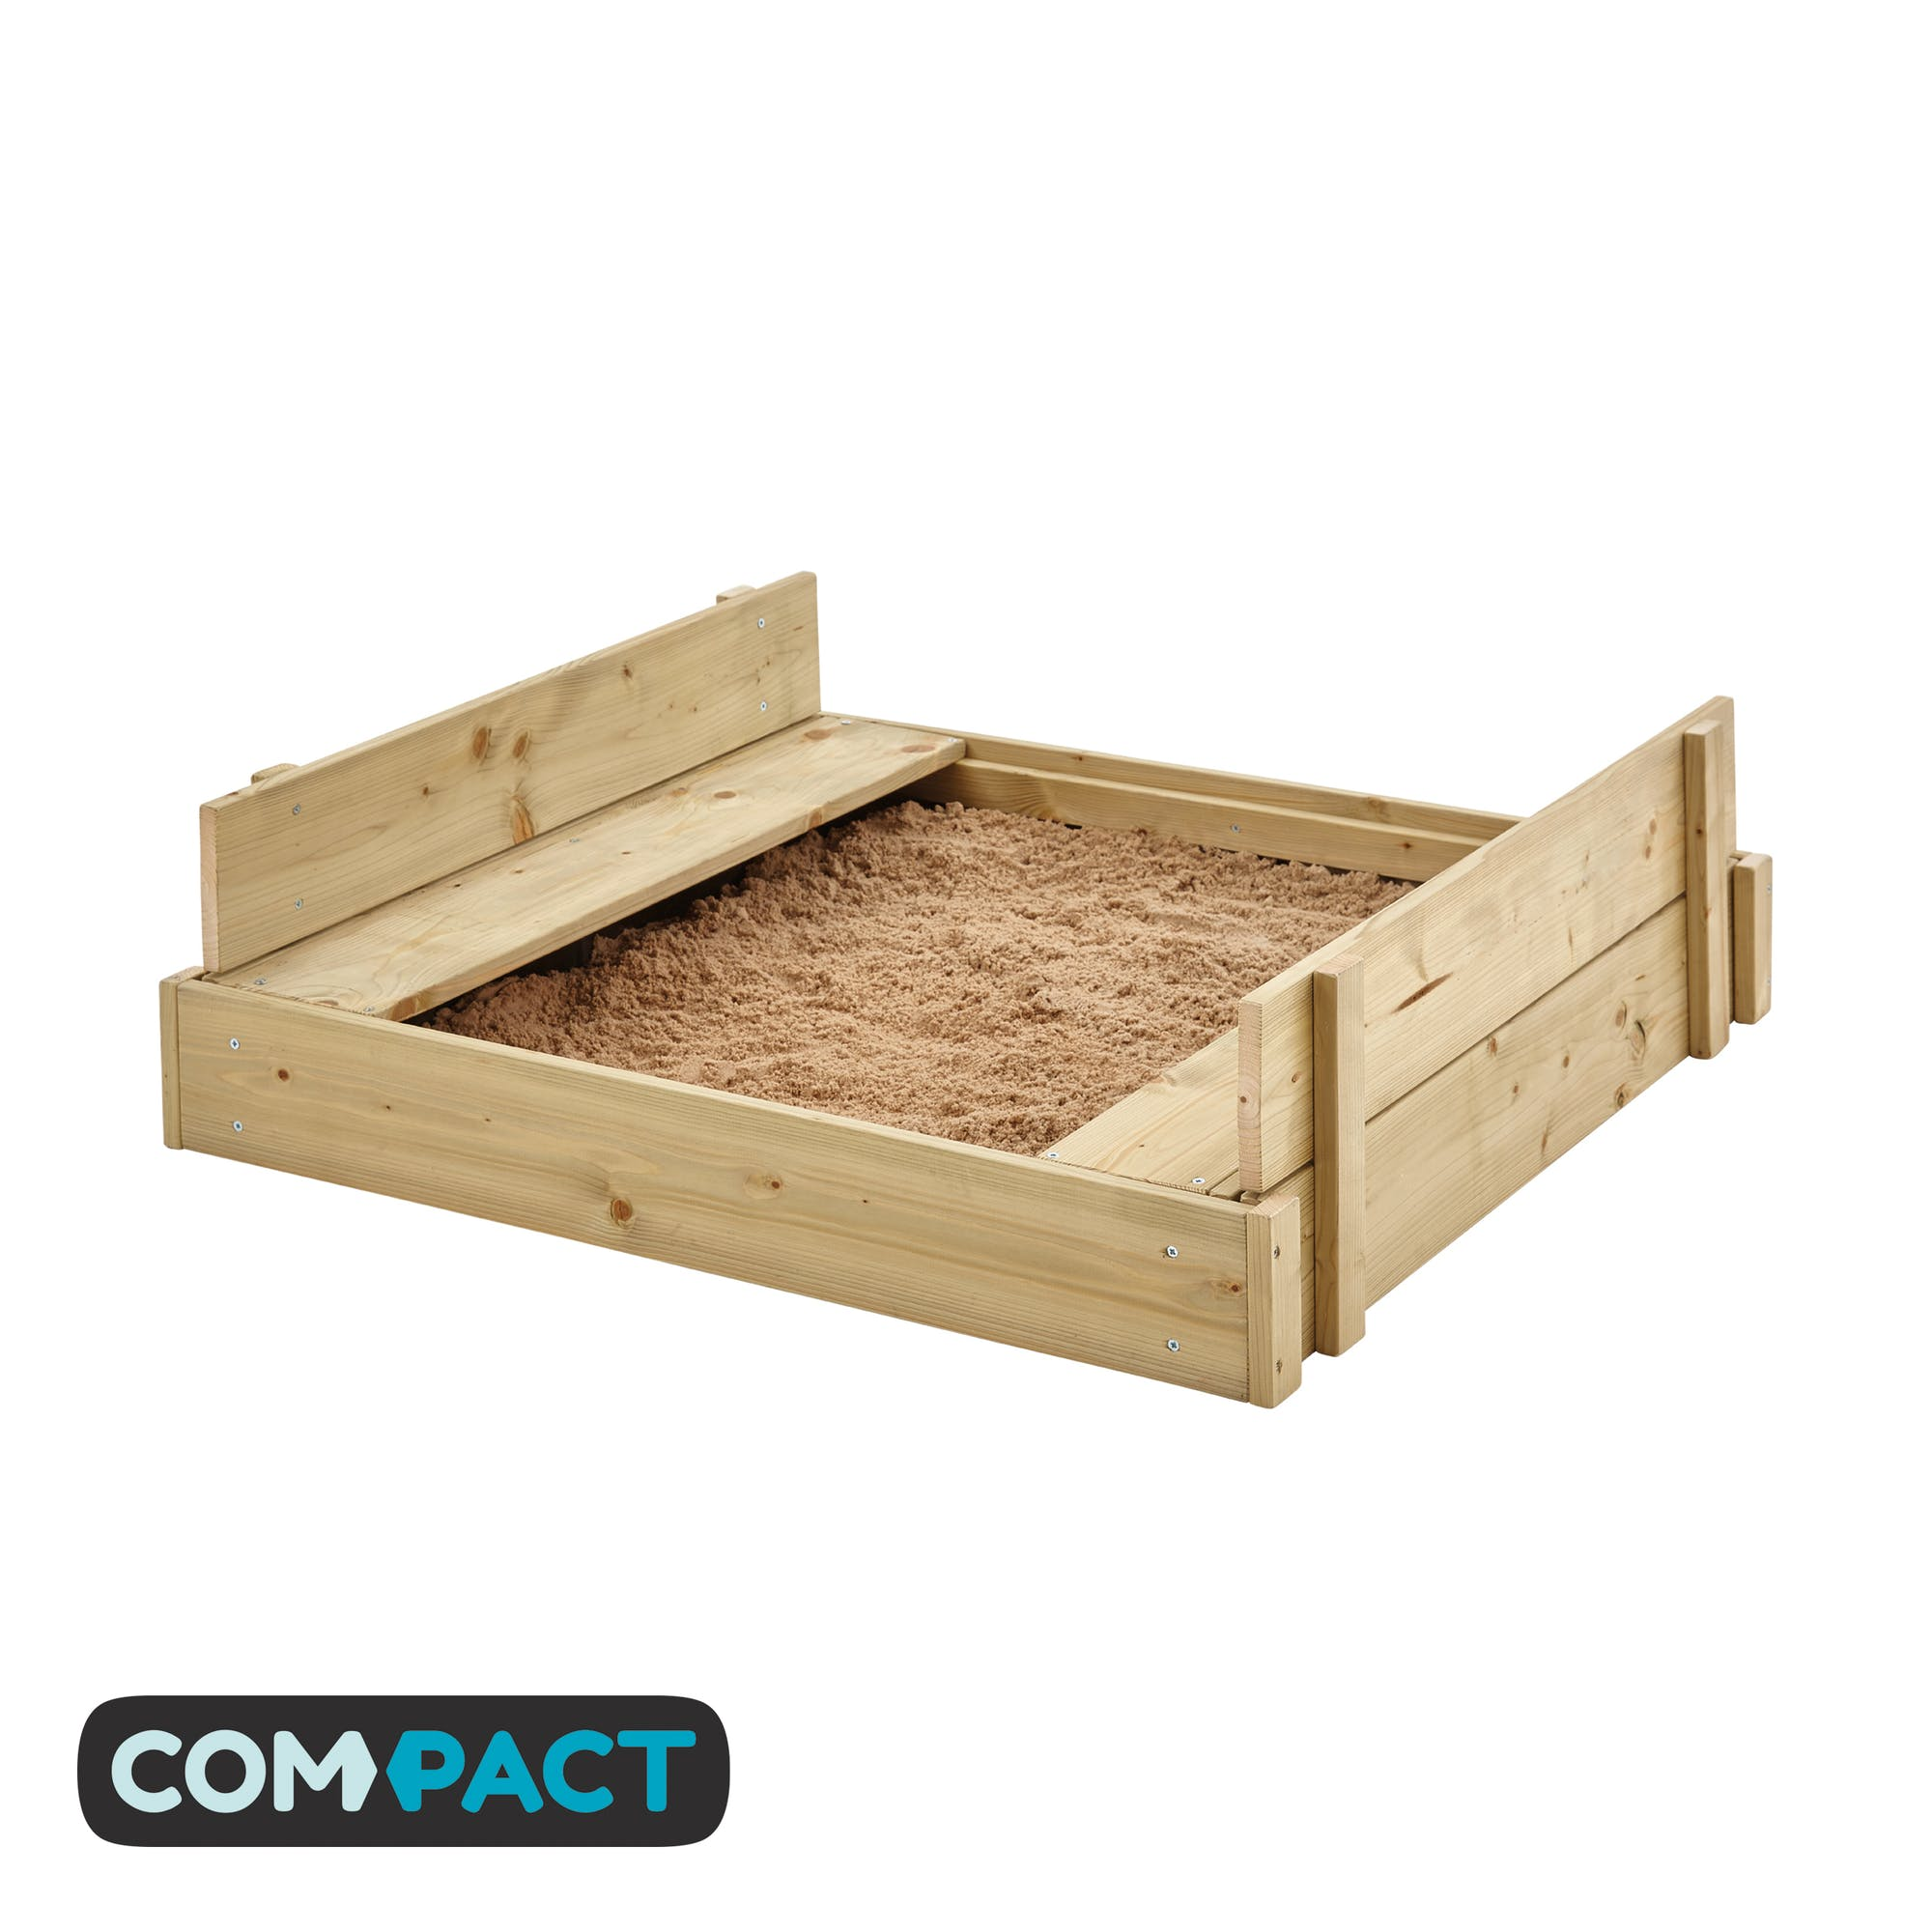 Wooden Lidded Sandpit